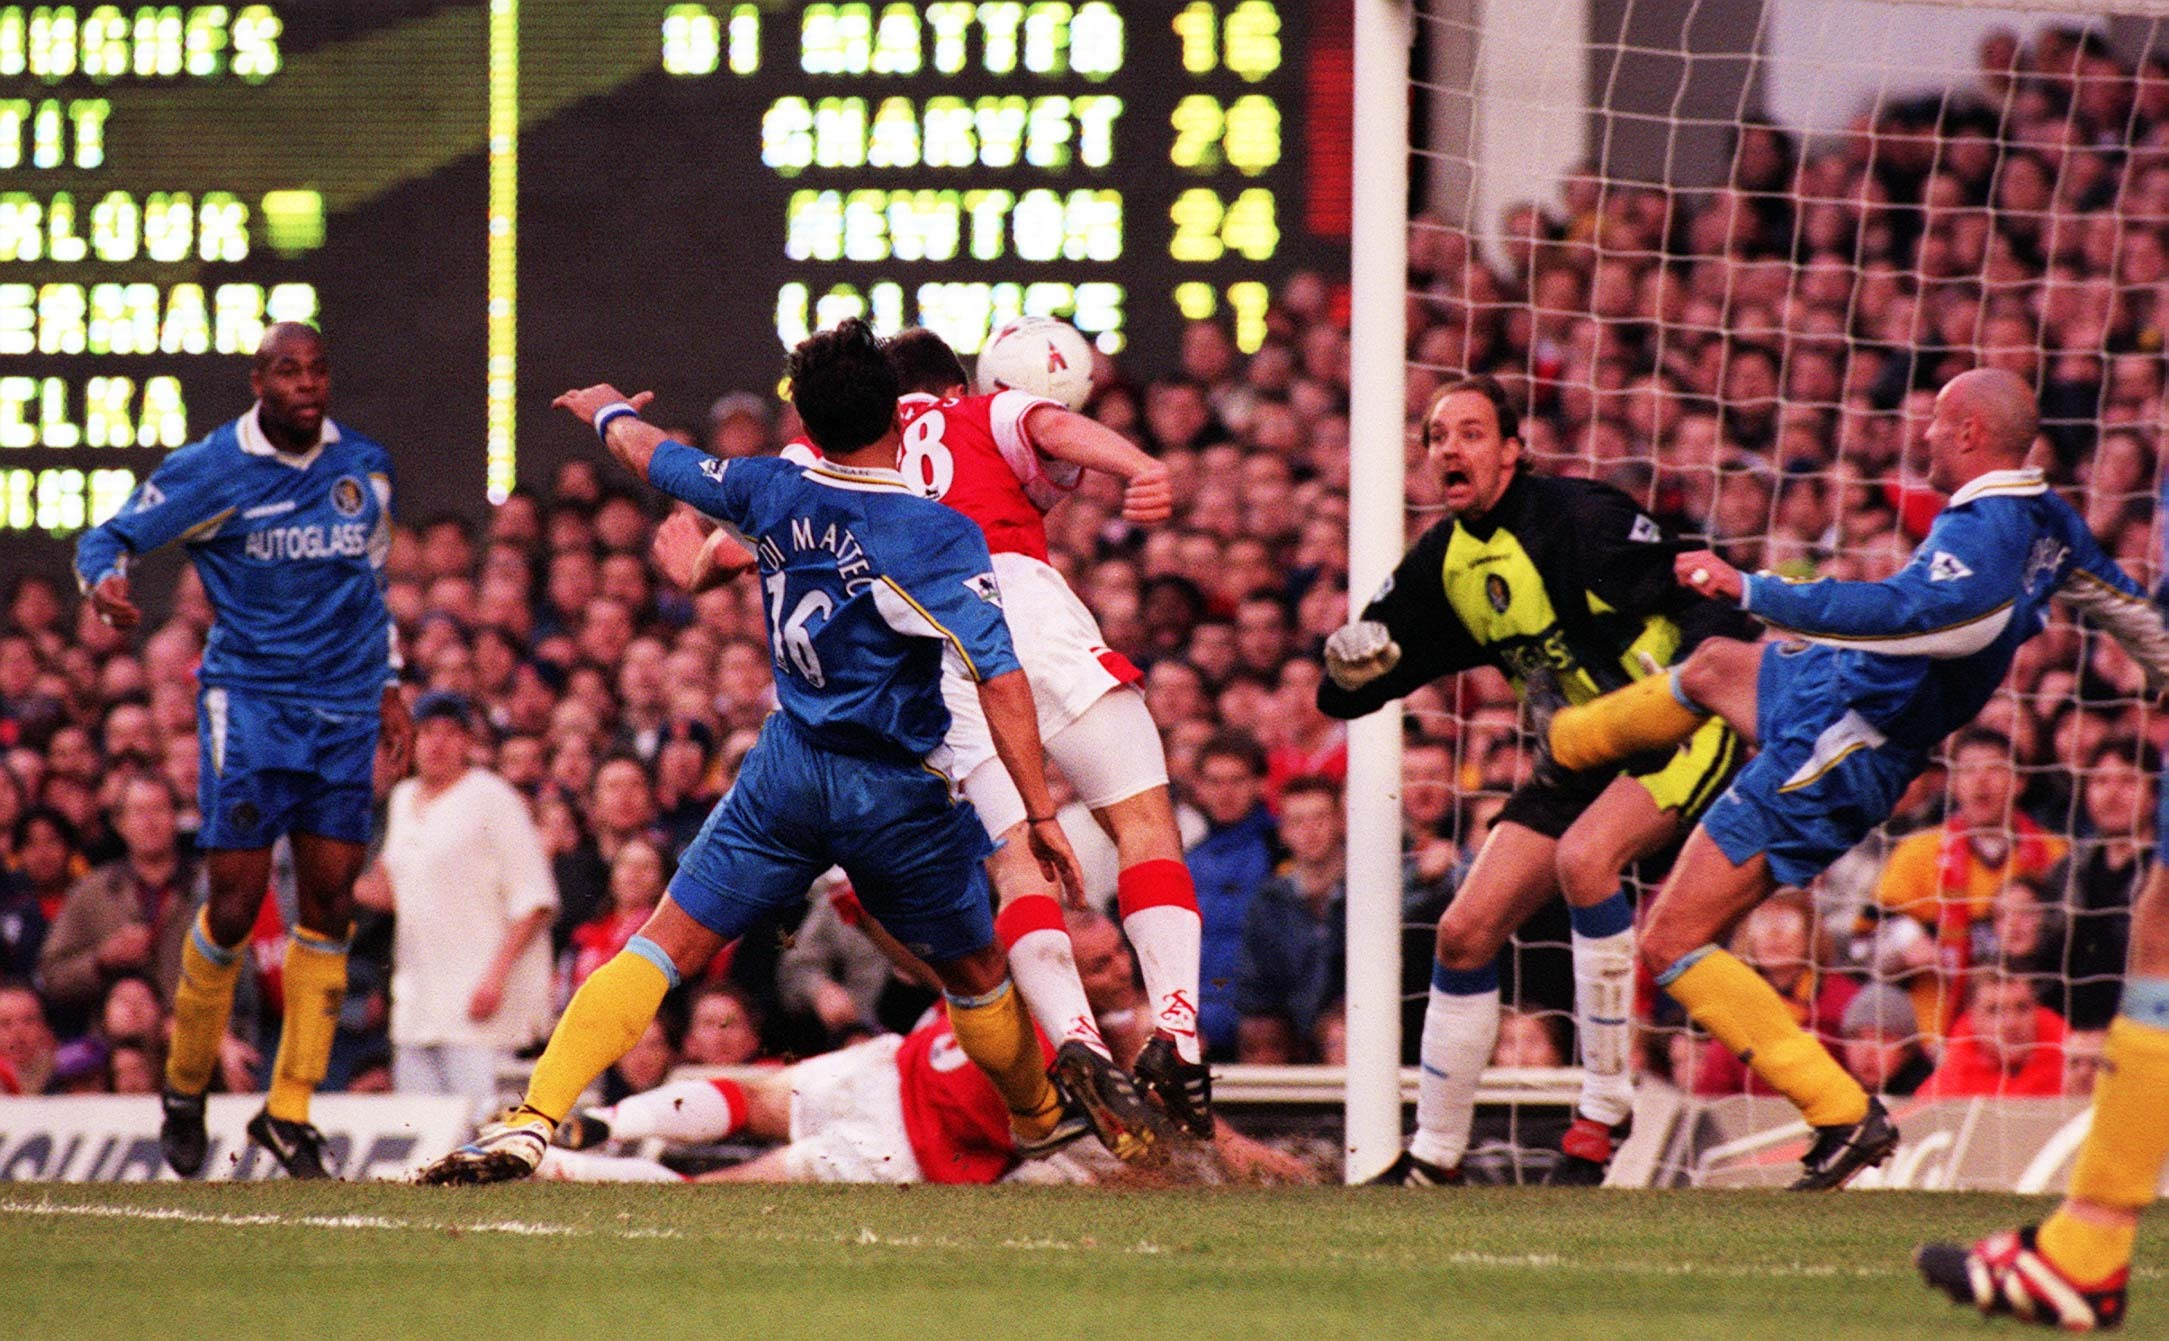 Stephen Hughes was the unlikely two-goal hero as Arsenal beat Chelsea 2-0 at Highbury en route to the Premier League title in 1998.